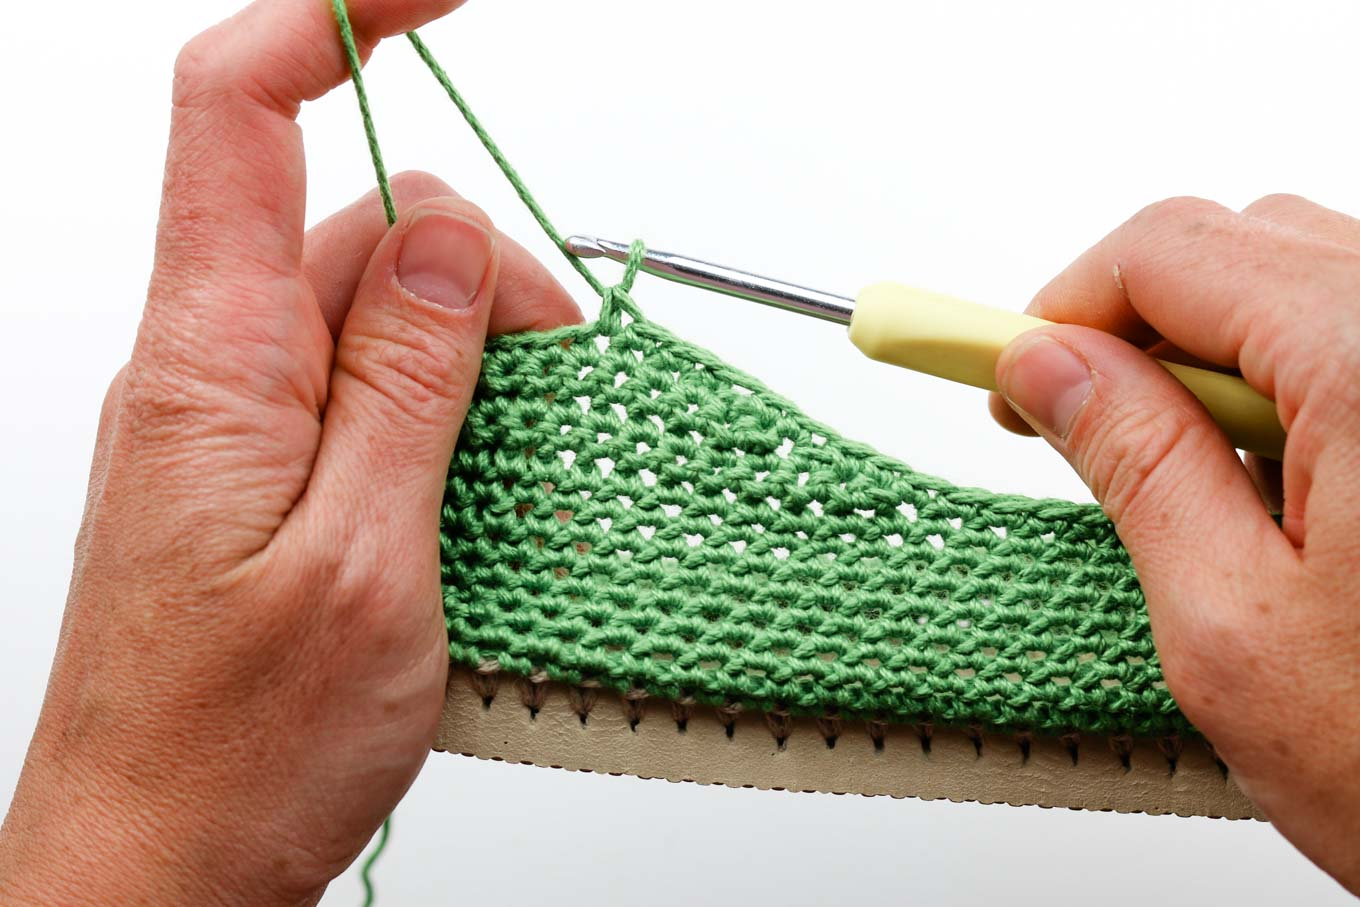 Learn how to crochet your own functional shoes by using Lion Brand 24/7 Cotton yarn and flip flop soles. Free pattern and photo tutorial (with some video) from Make and Do Crew.